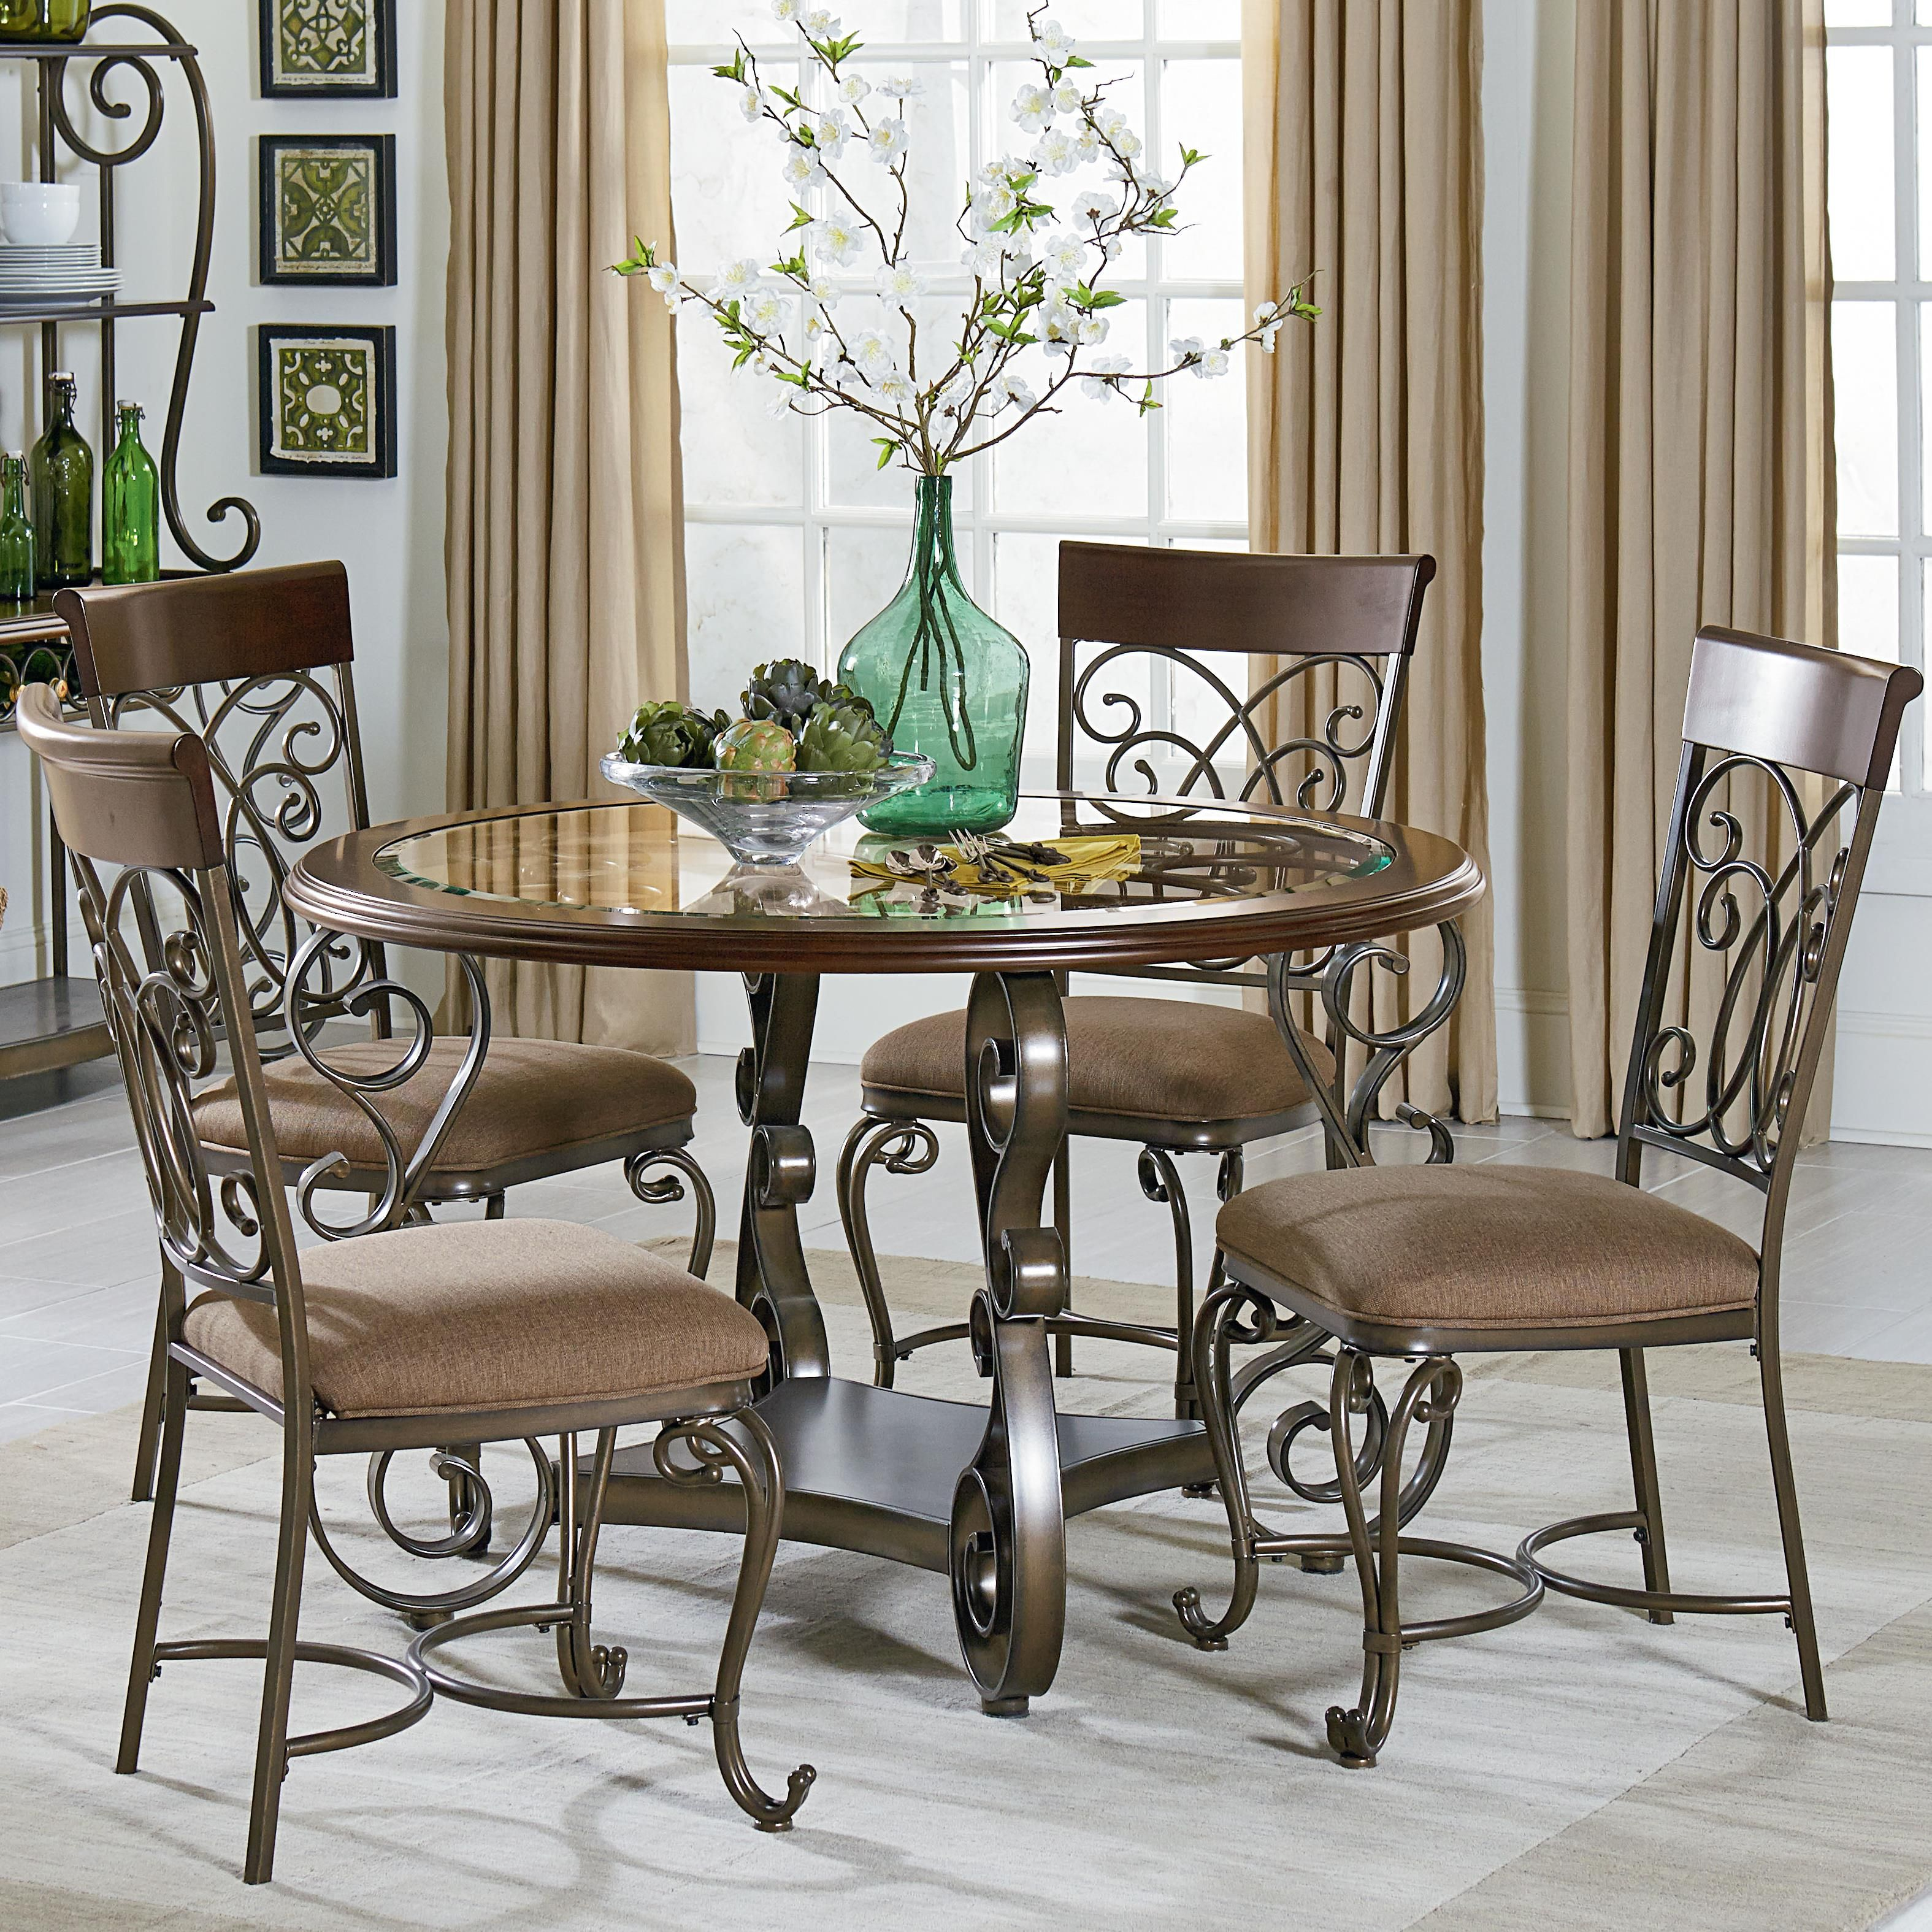 Bombay Round Table and Chair Set With